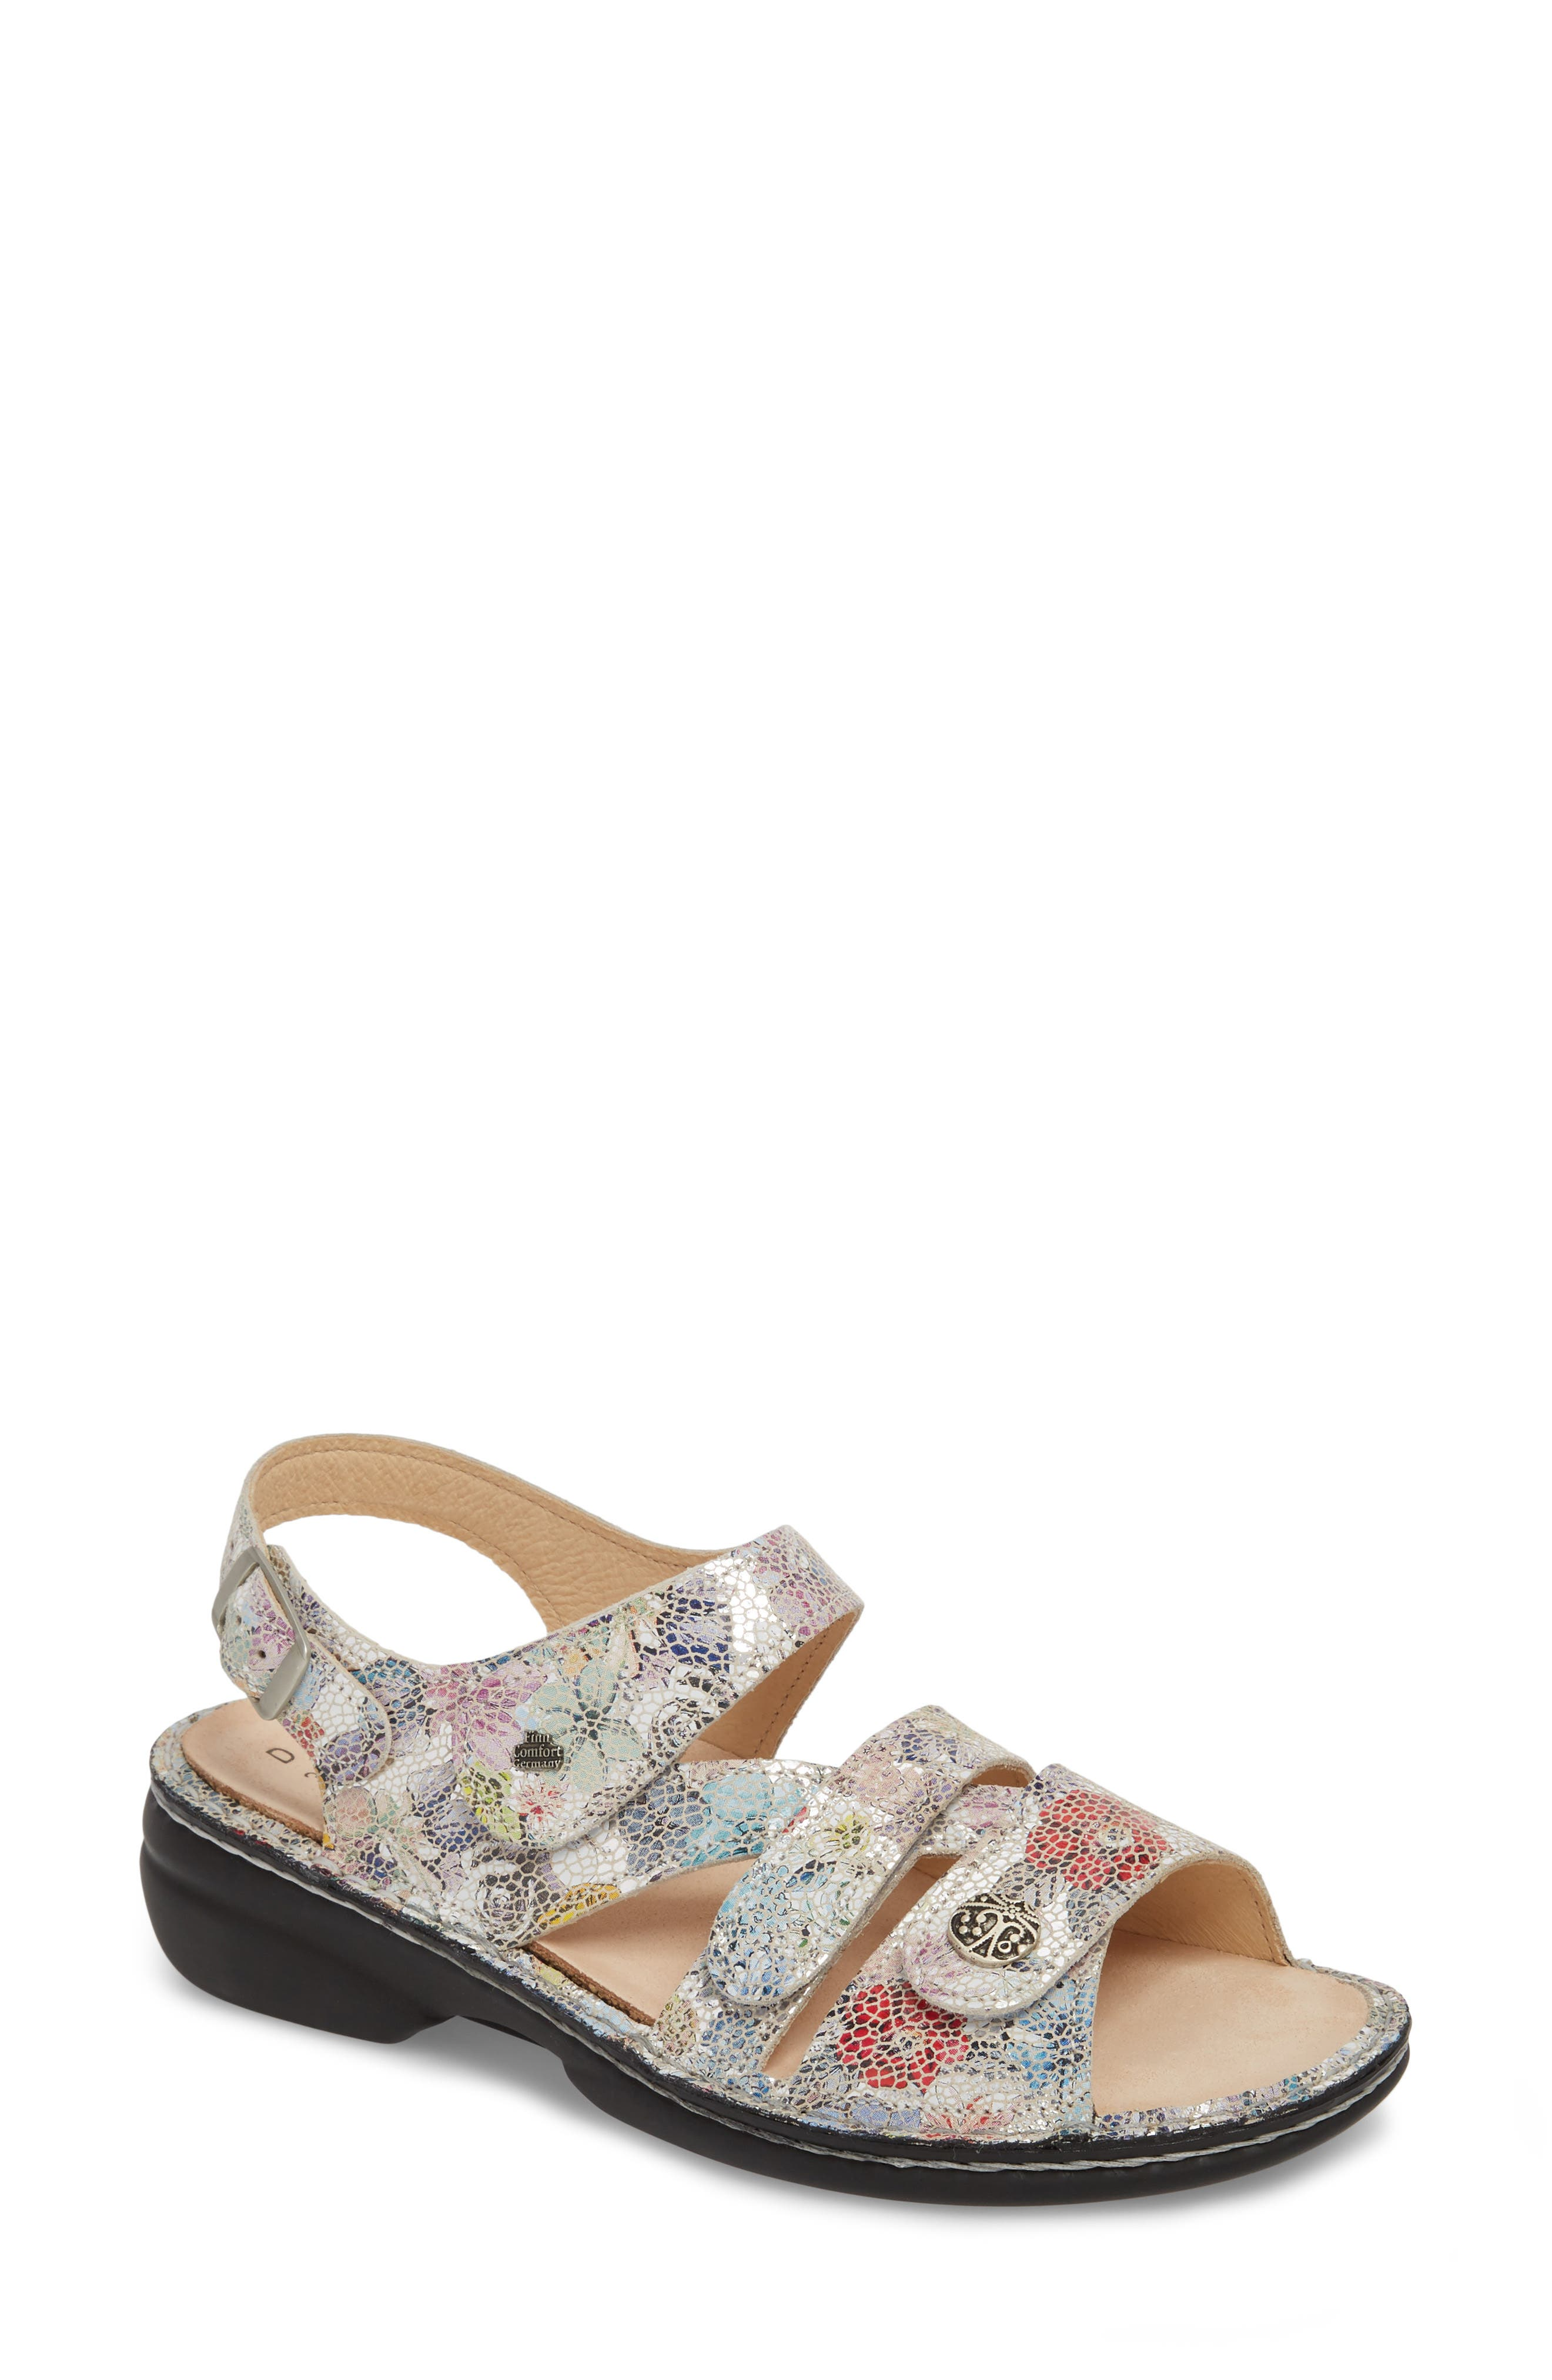 'Gomera' Sandal,                             Main thumbnail 1, color,                             Multi Flower Printed Leather